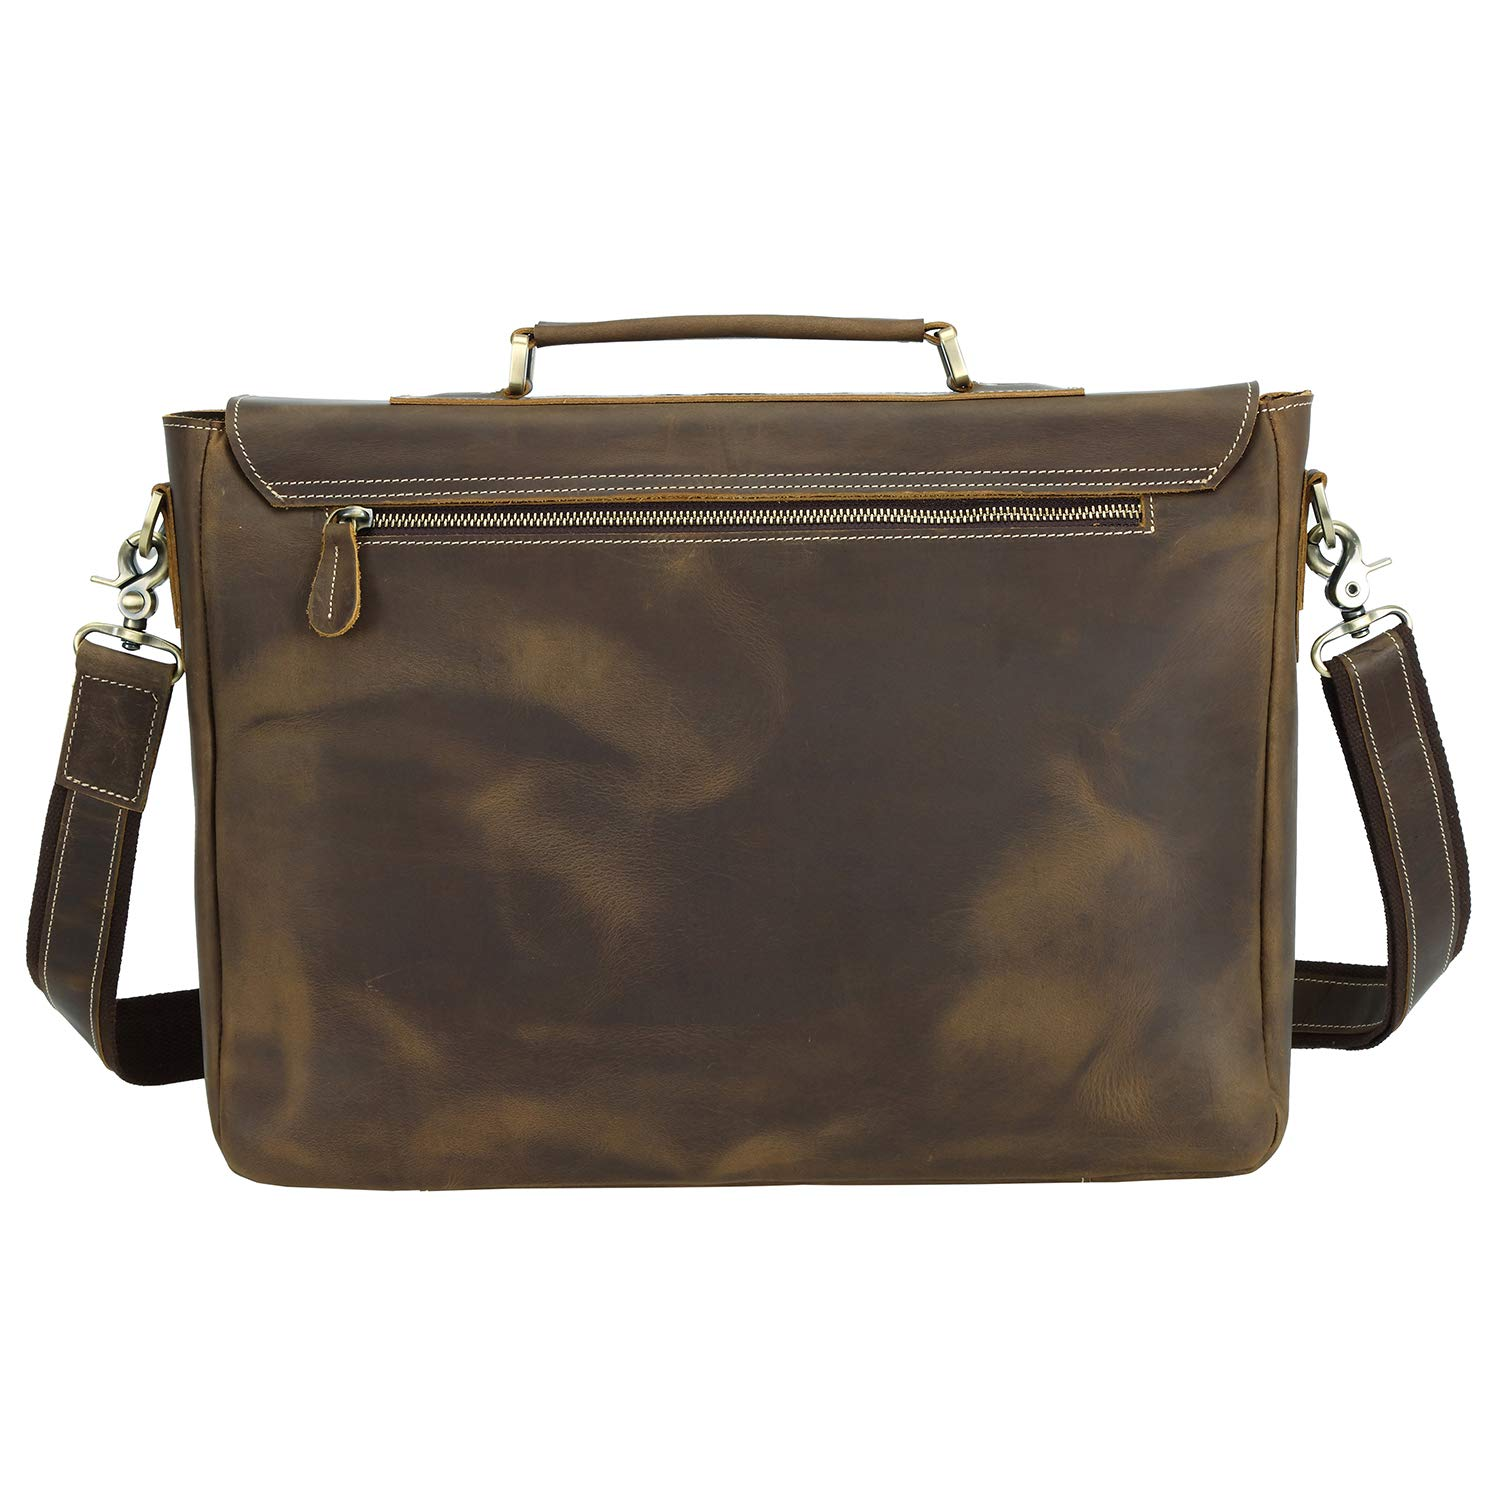 Texbo Men's 16 Inch Full Grain Cowhide Leather Laptop Briefcase Messenger Bag Tote by Texbo (Image #4)